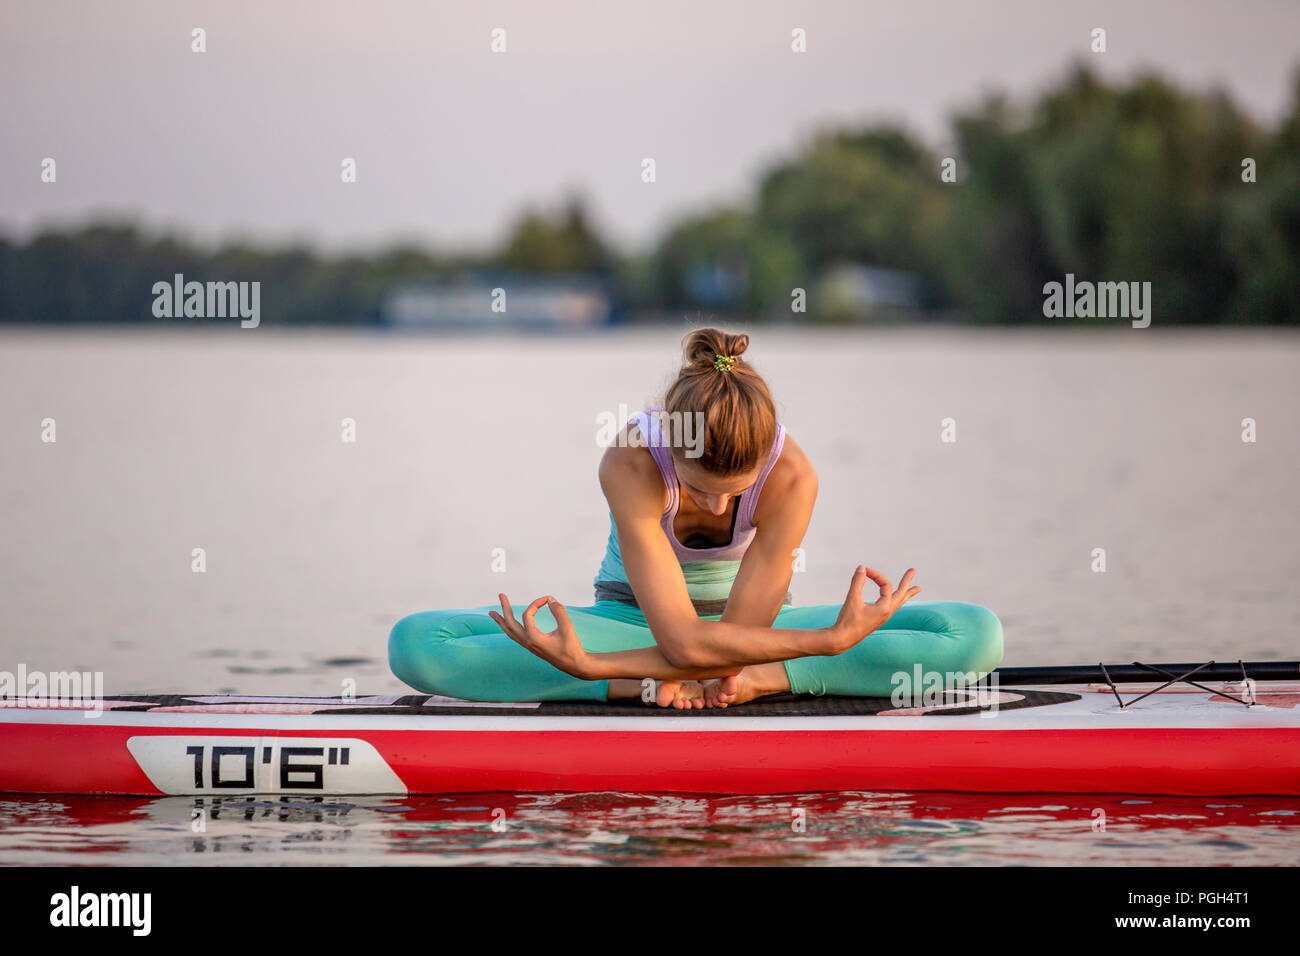 Young woman sitting on paddle board, practicing yoga pose